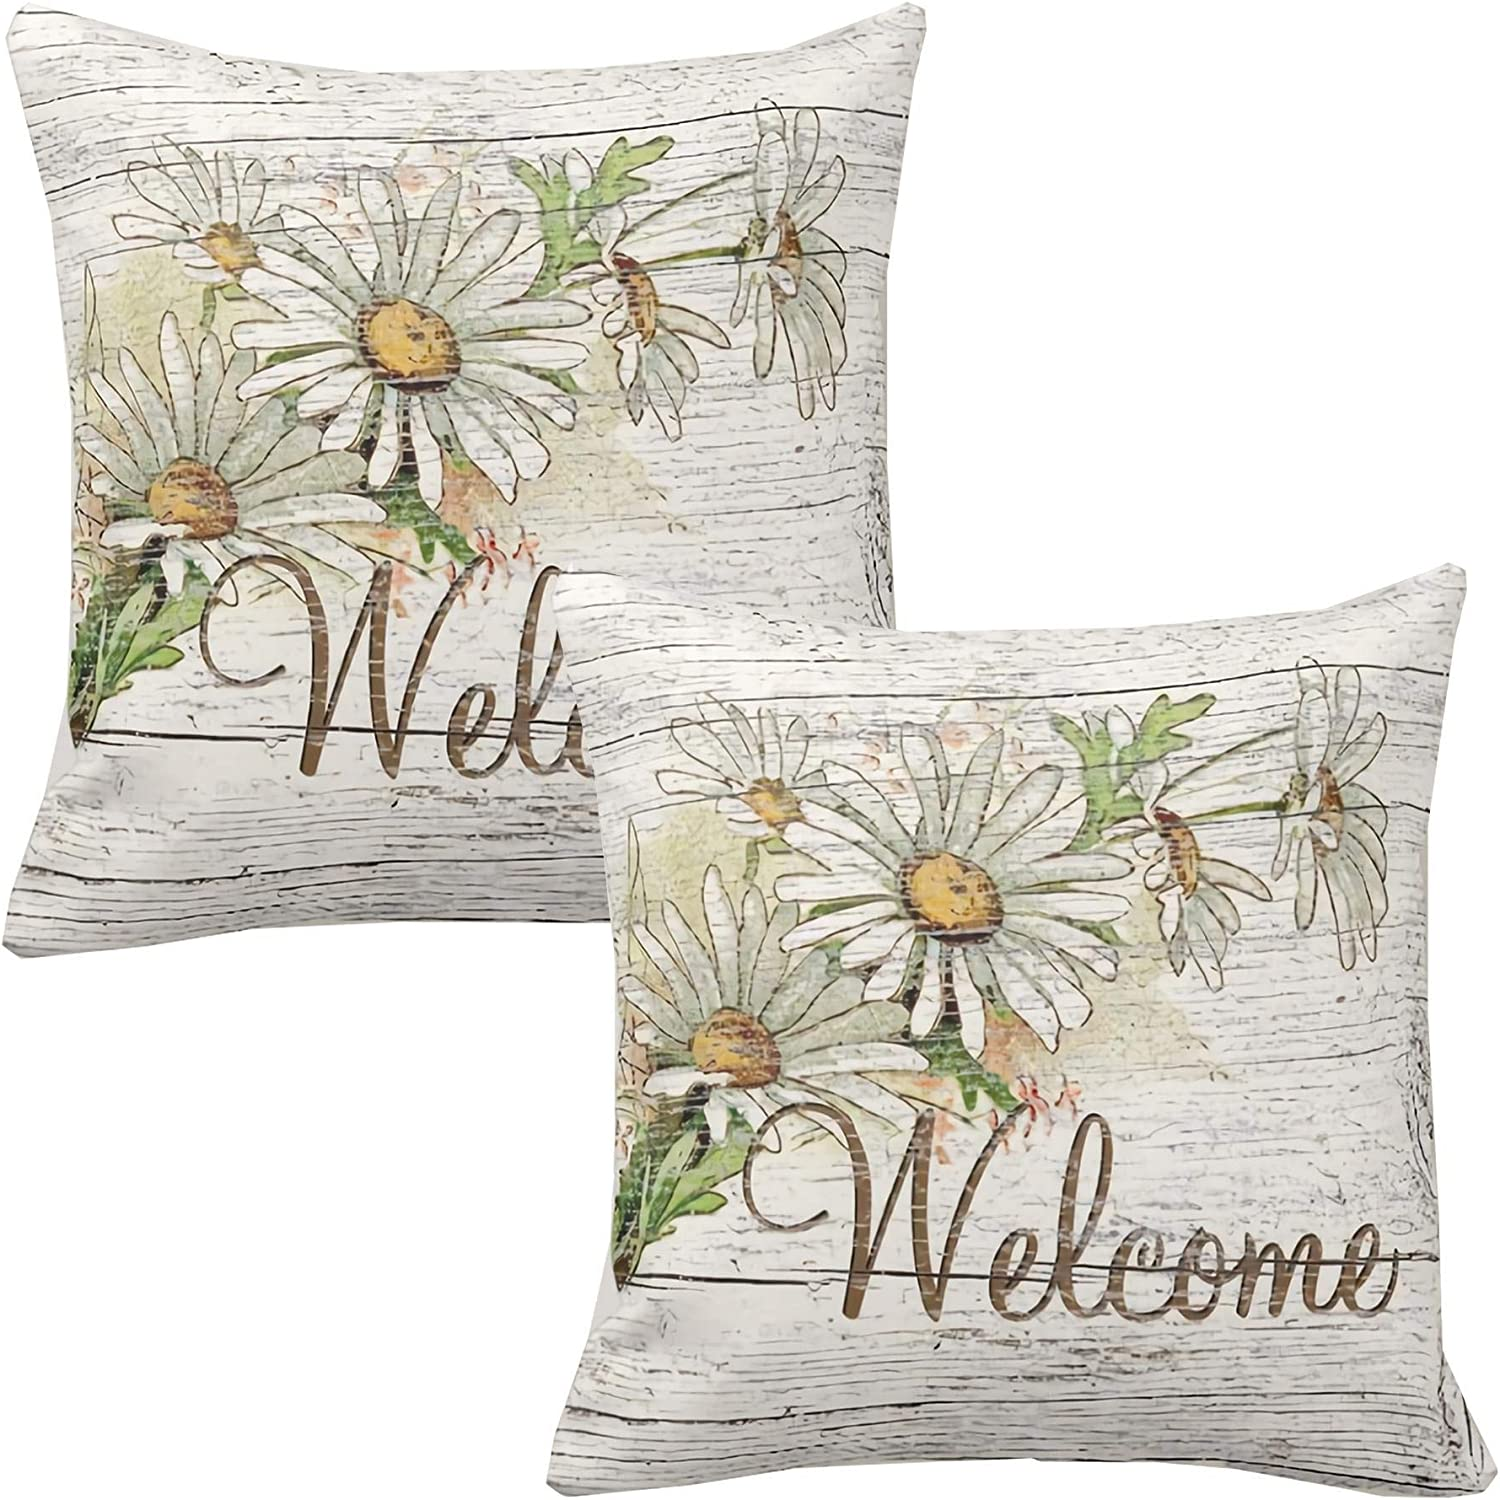 Welcome Spring Floral Throw Pillow Covers 20x20 Inch Set of 2,ZUEXT Outdoor Square Polyester Rustic Vintage Daisy Flowers Pillowcases for Sofa Couch Wedding Nursery Baby Shower Decor Housewarming Gift